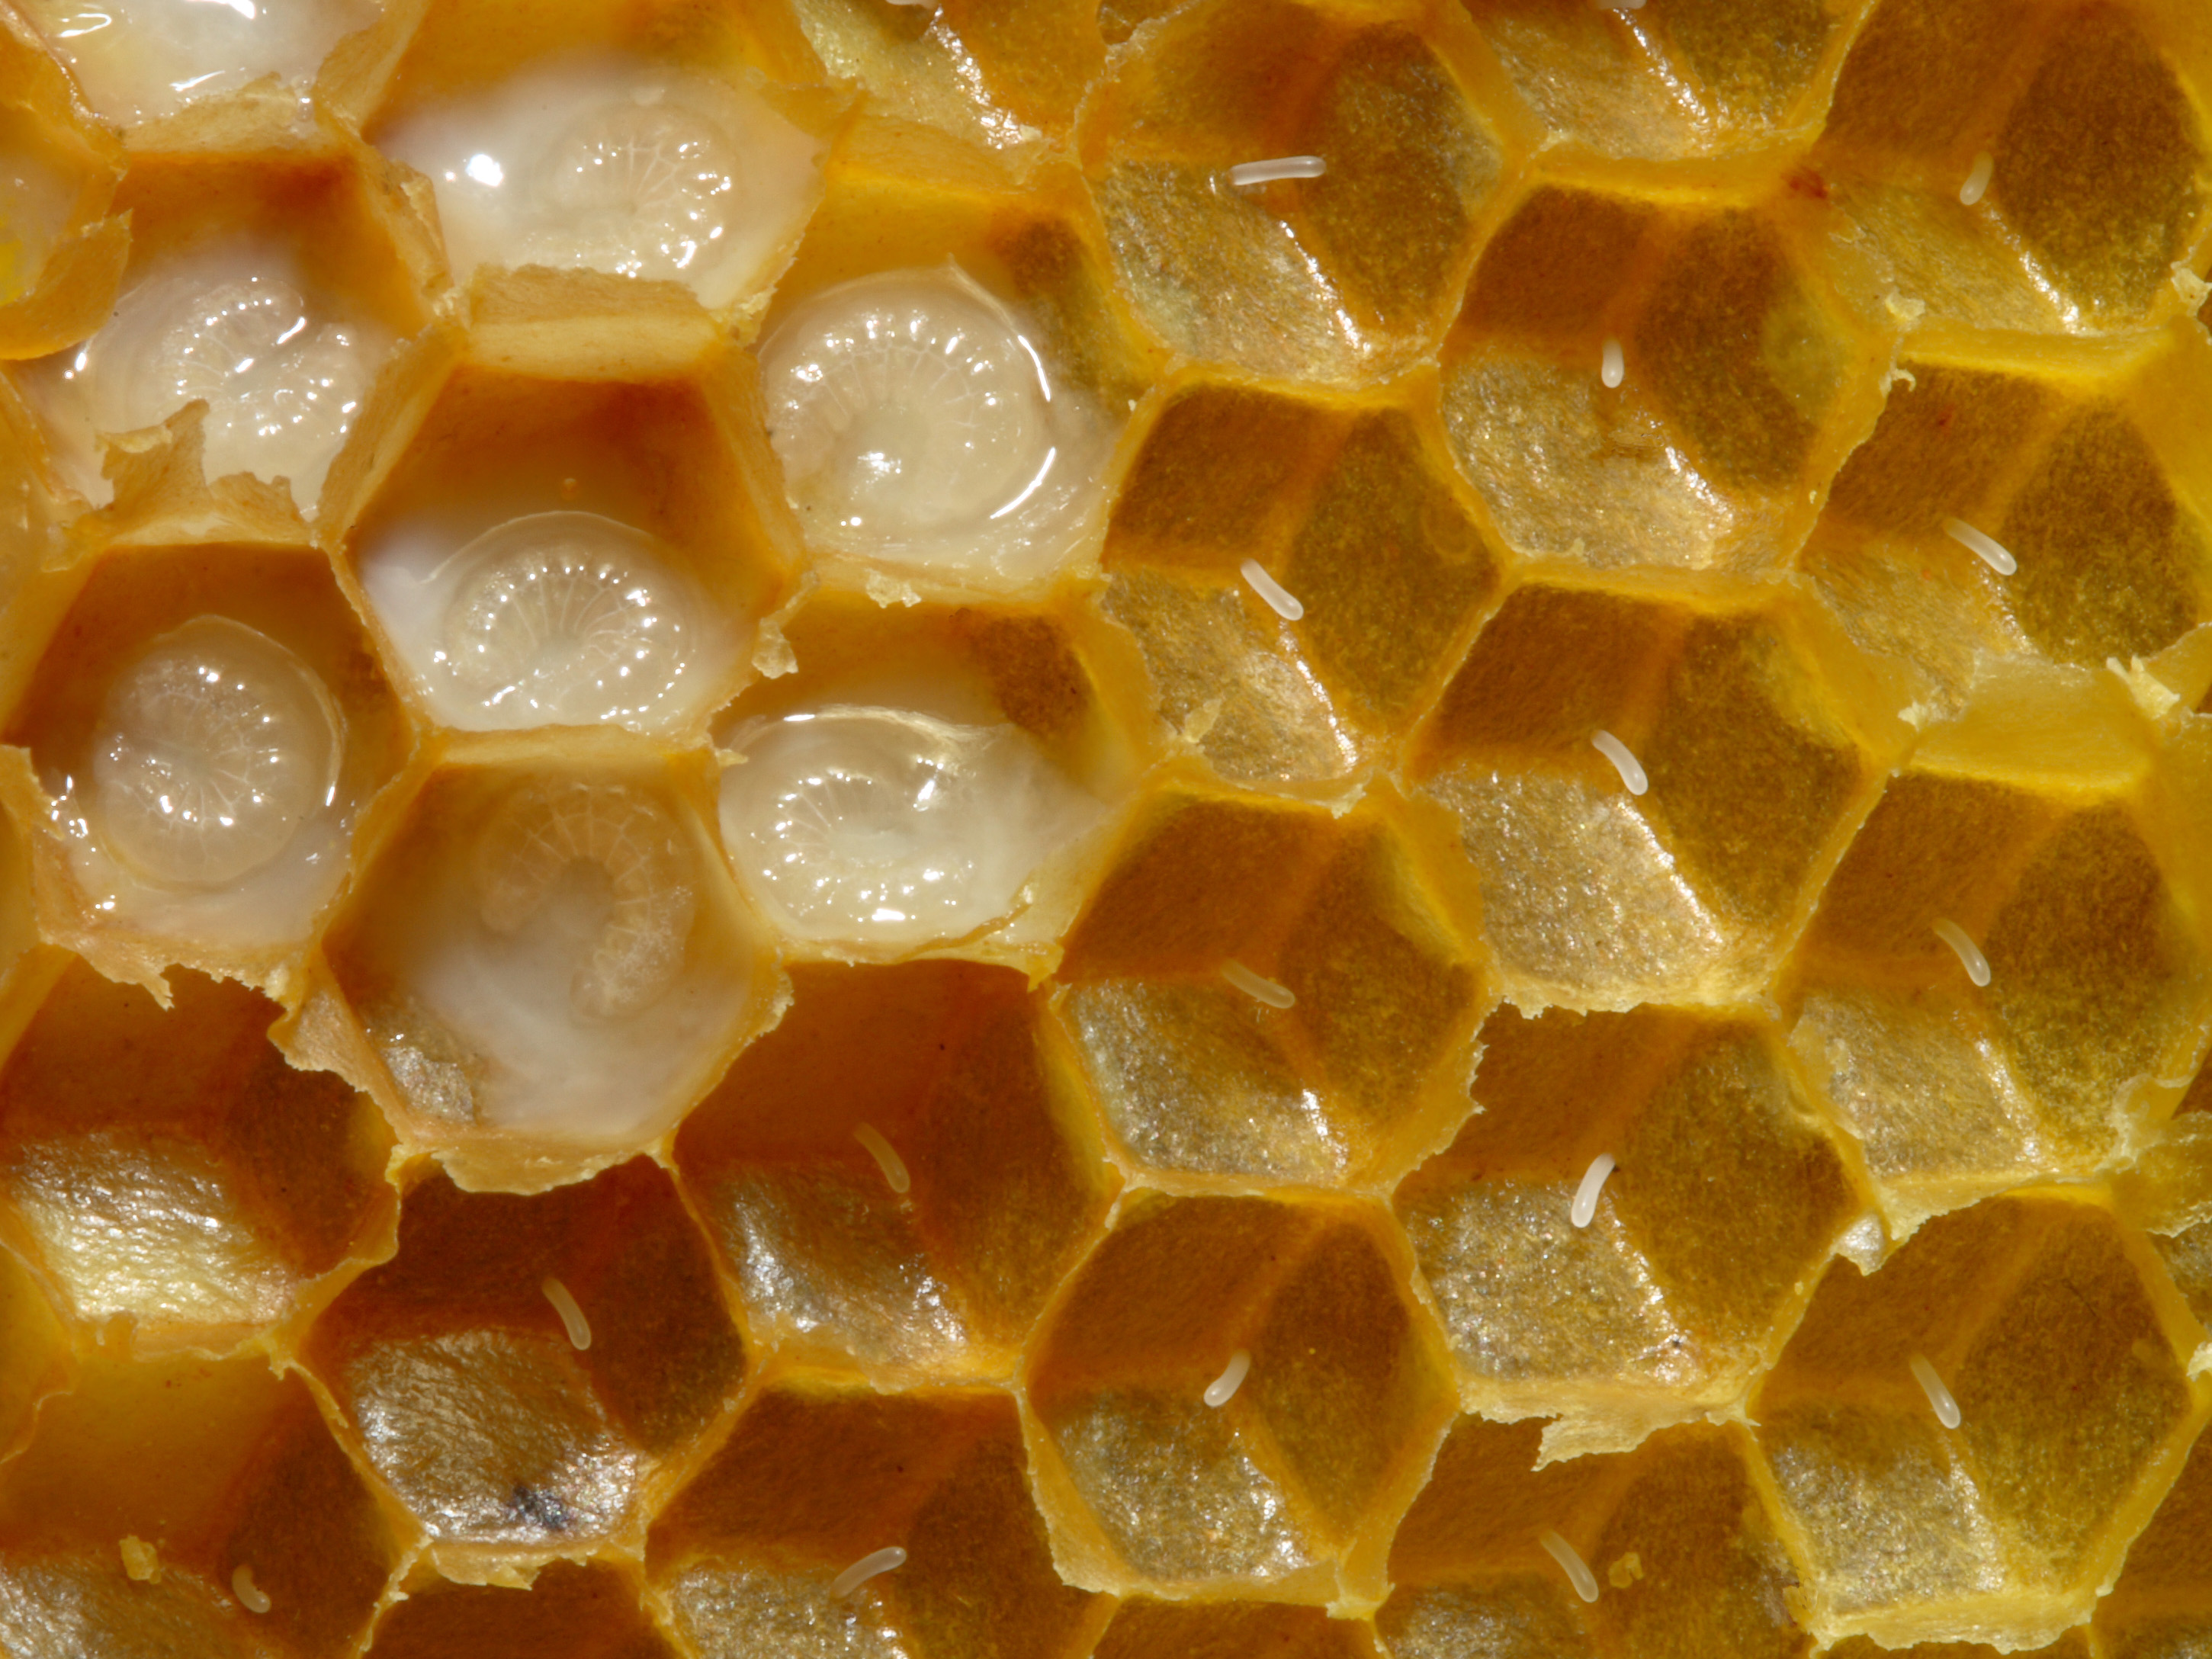 Images of Honeycomb | 2901x2176